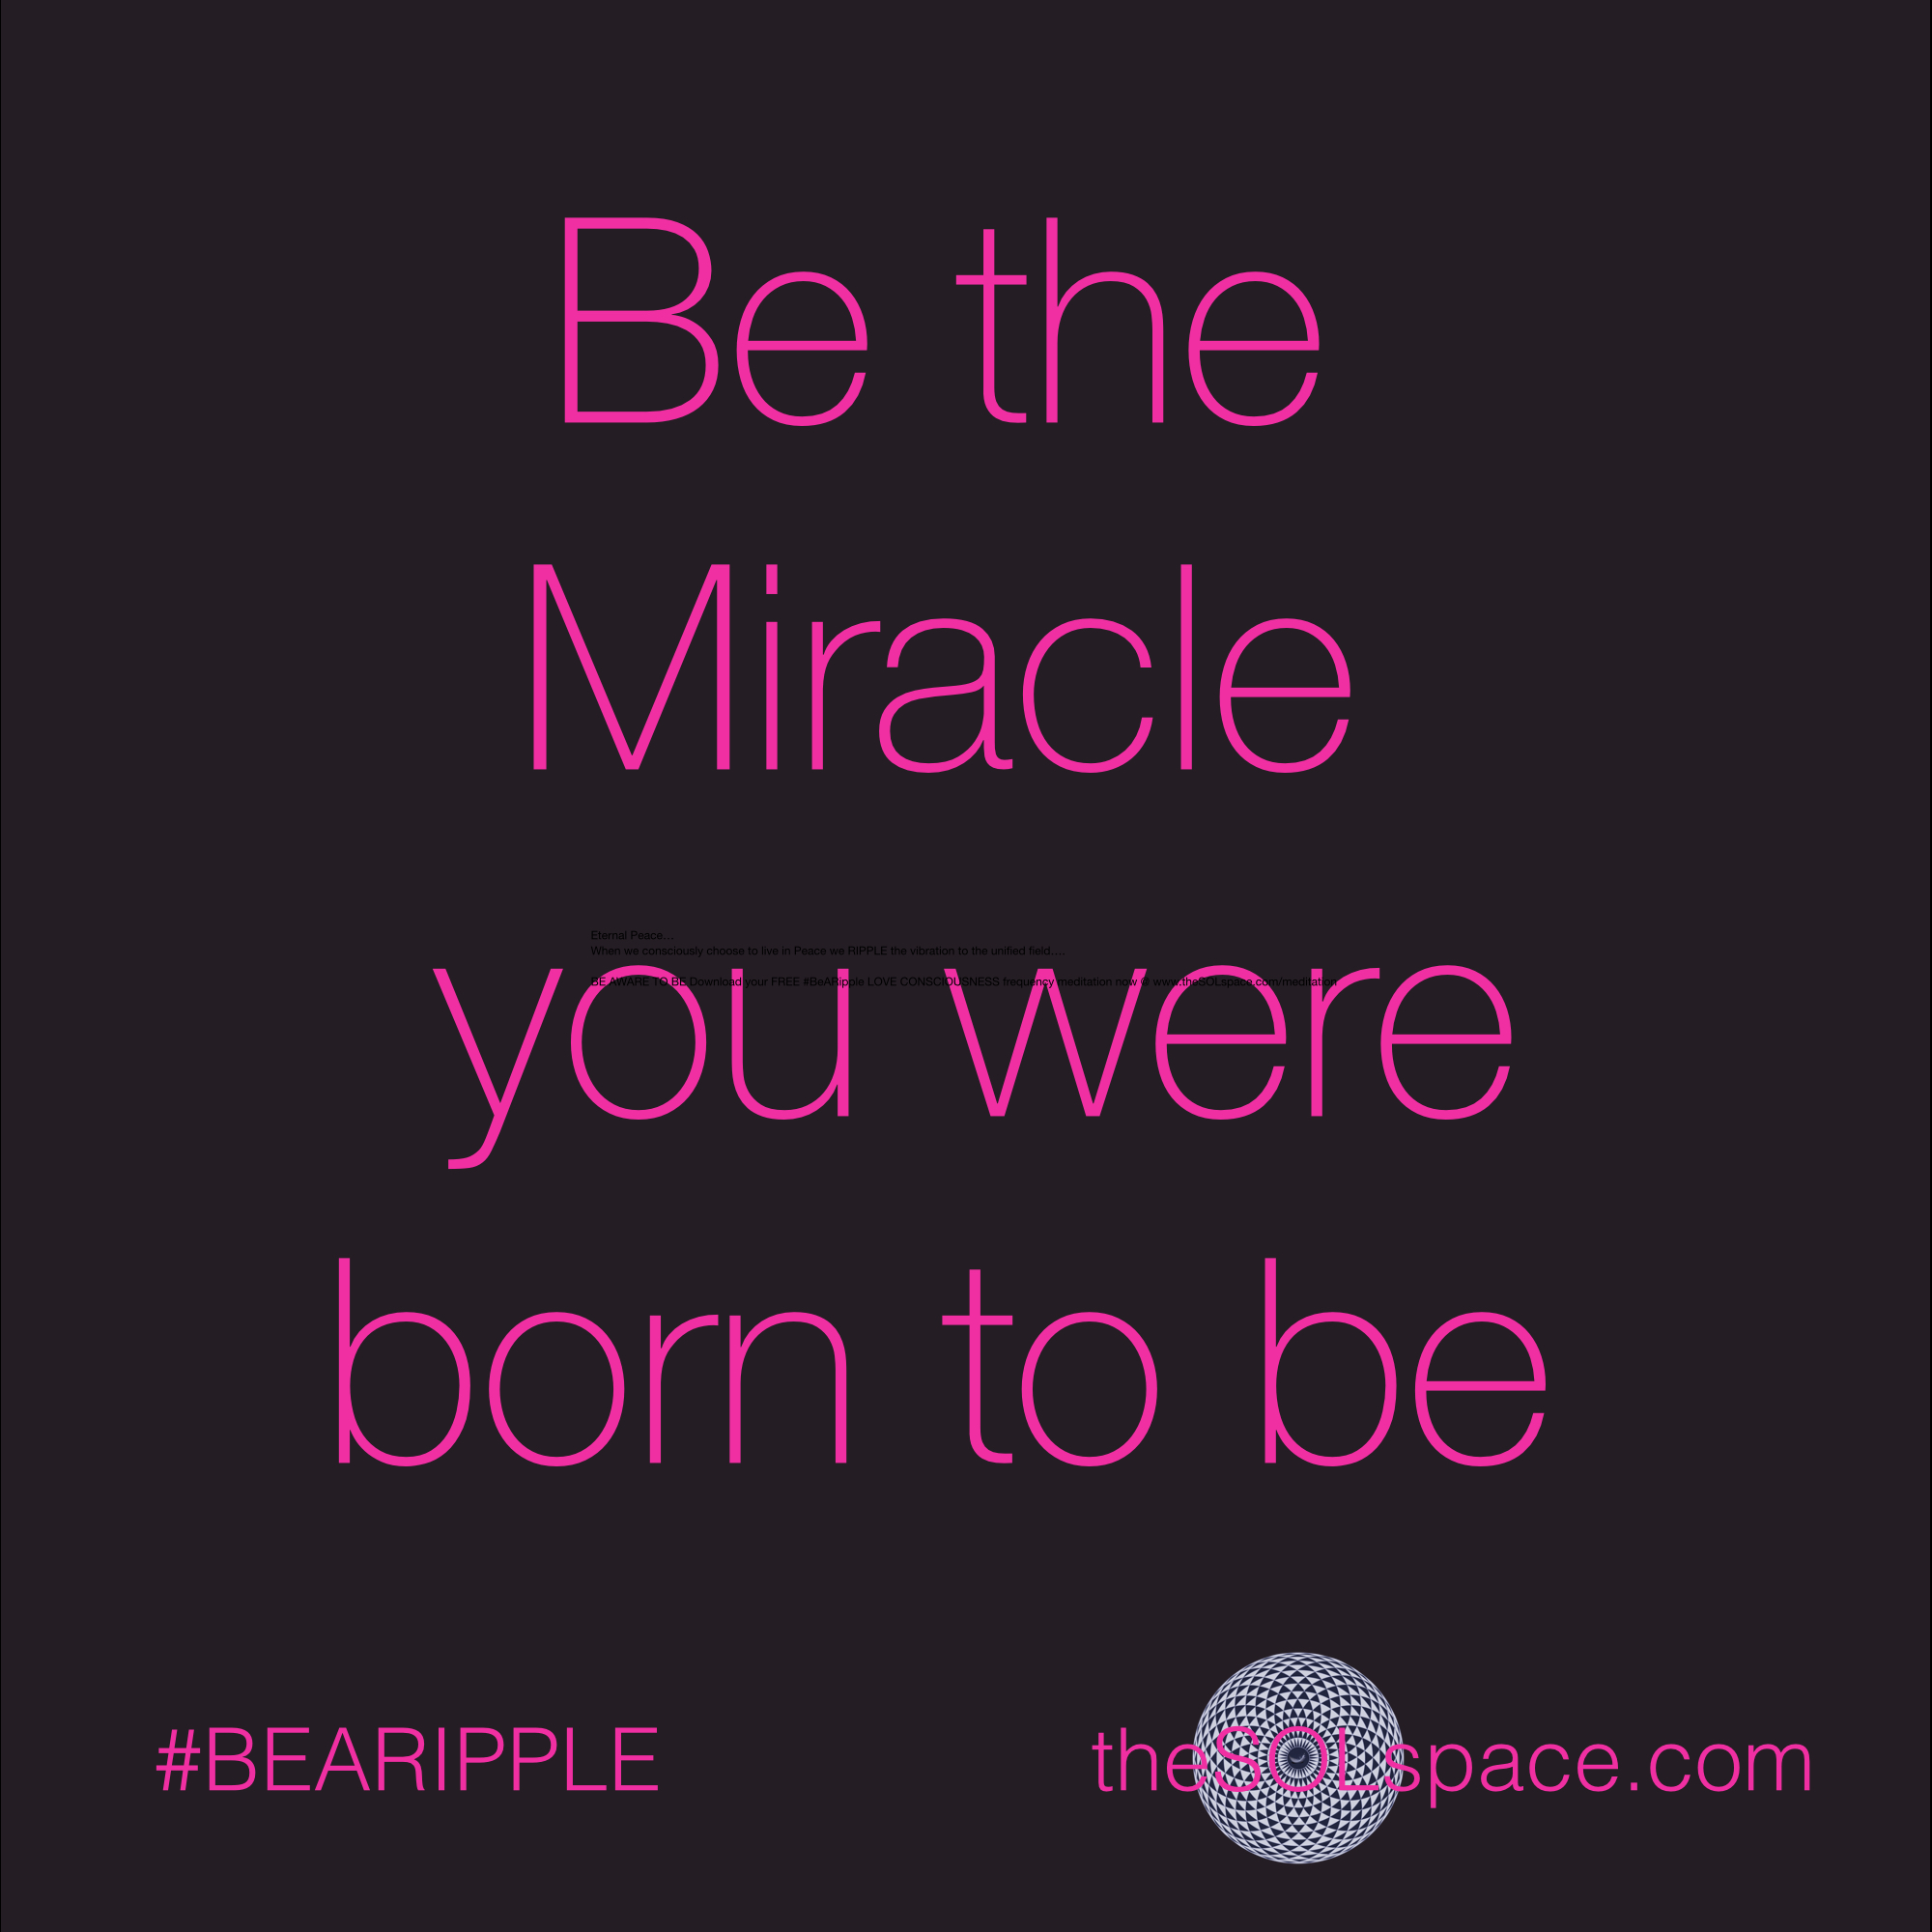 #BeARipple..Be the Miracle you were born to be @theSOLspace